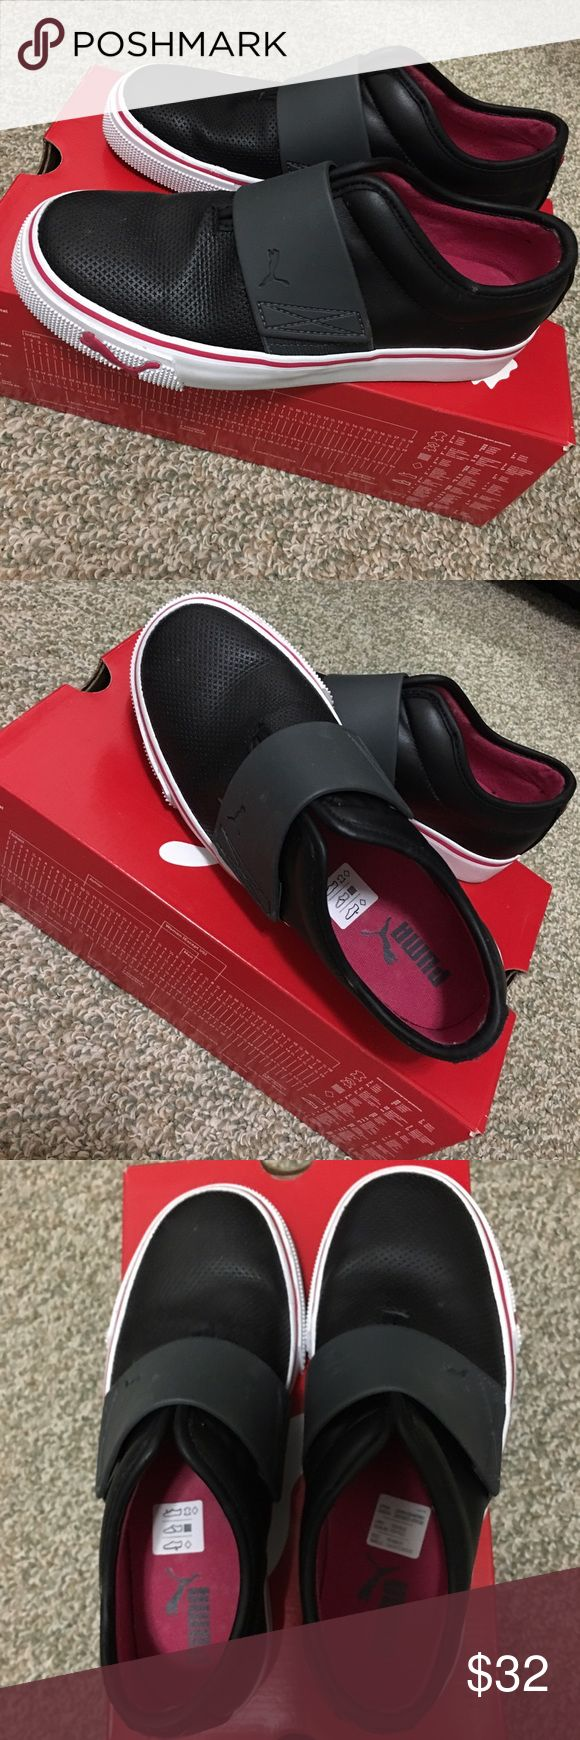 Puma El Rey Women Slip-on Very good condition! Only wore them once. Still clean. Size 6. Very comfortable shoes. Good pair of shoes to go out anywhere 😊. All black and white with bright pink trimming. Puma Shoes Sneakers